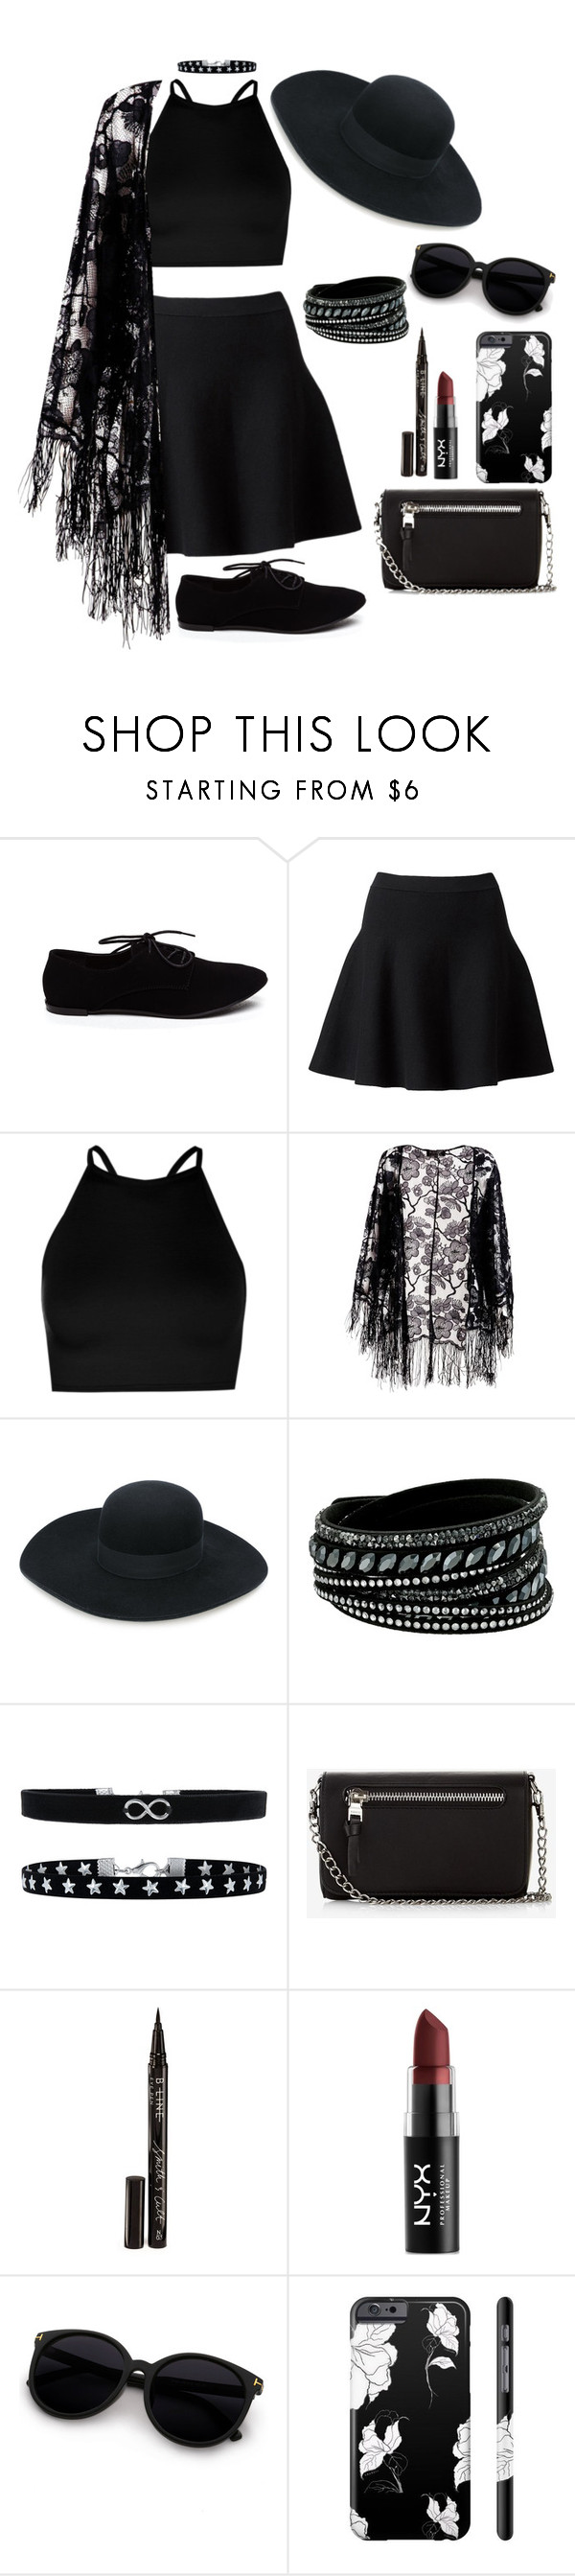 """""""Untitled #312"""" by nihility-of-our-existance on Polyvore featuring Witchery, Boohoo, Pussycat, Emporio Armani, Swarovski, Accessorize, Express, Smith & Cult and NYX"""